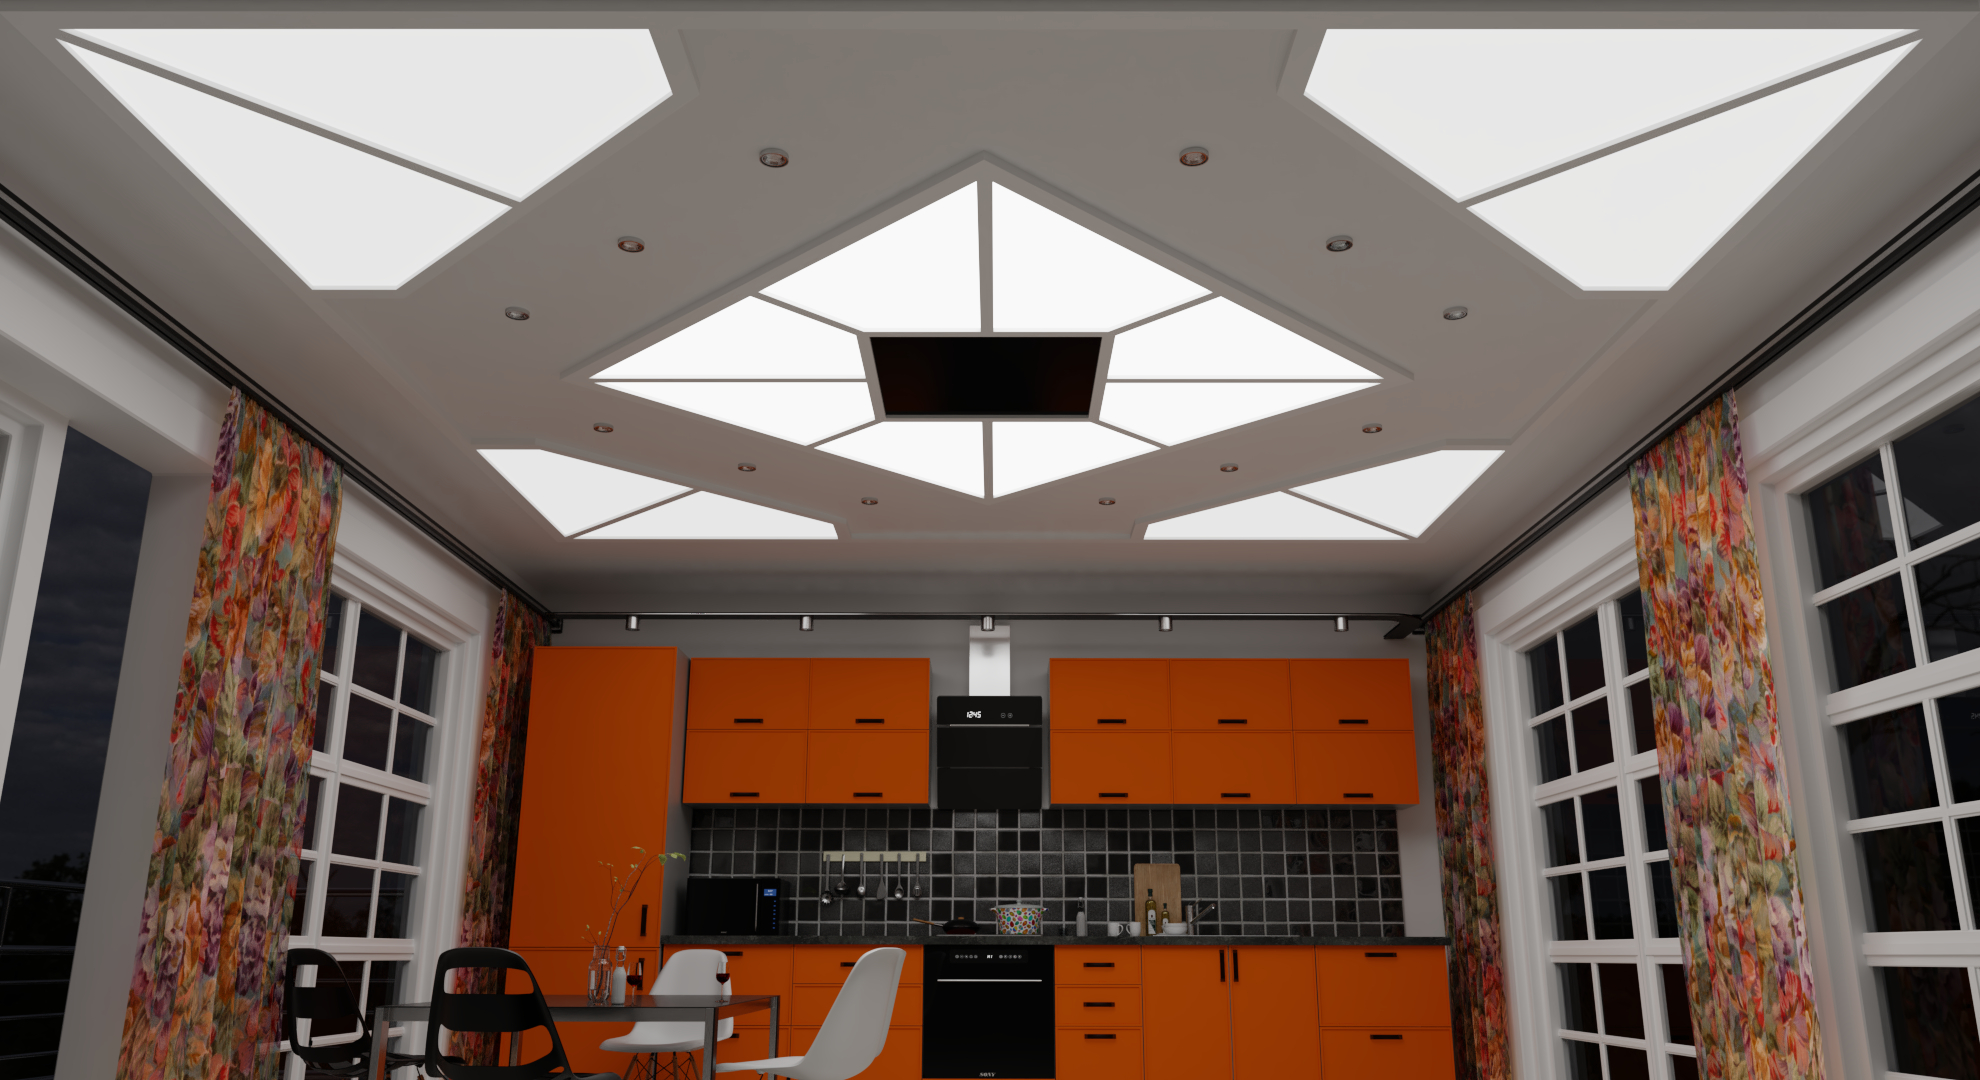 ceilings in Blender cycles render image